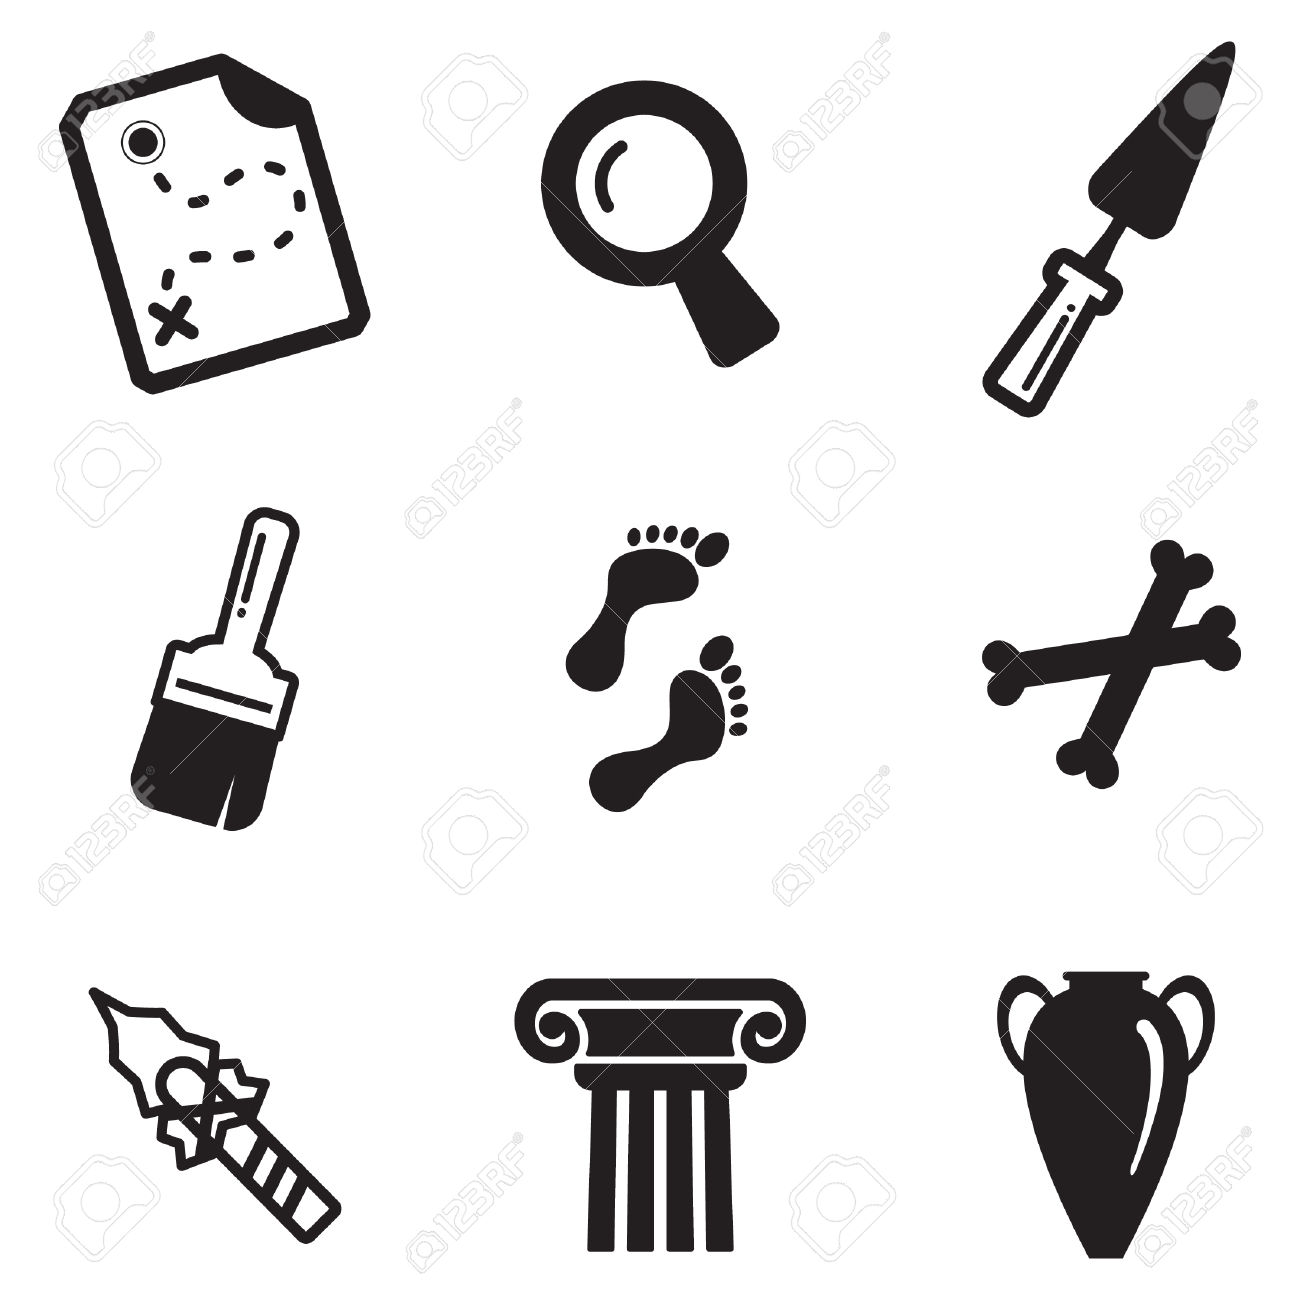 Archeology Icons Royalty Free Cliparts, Vectors, And Stock.